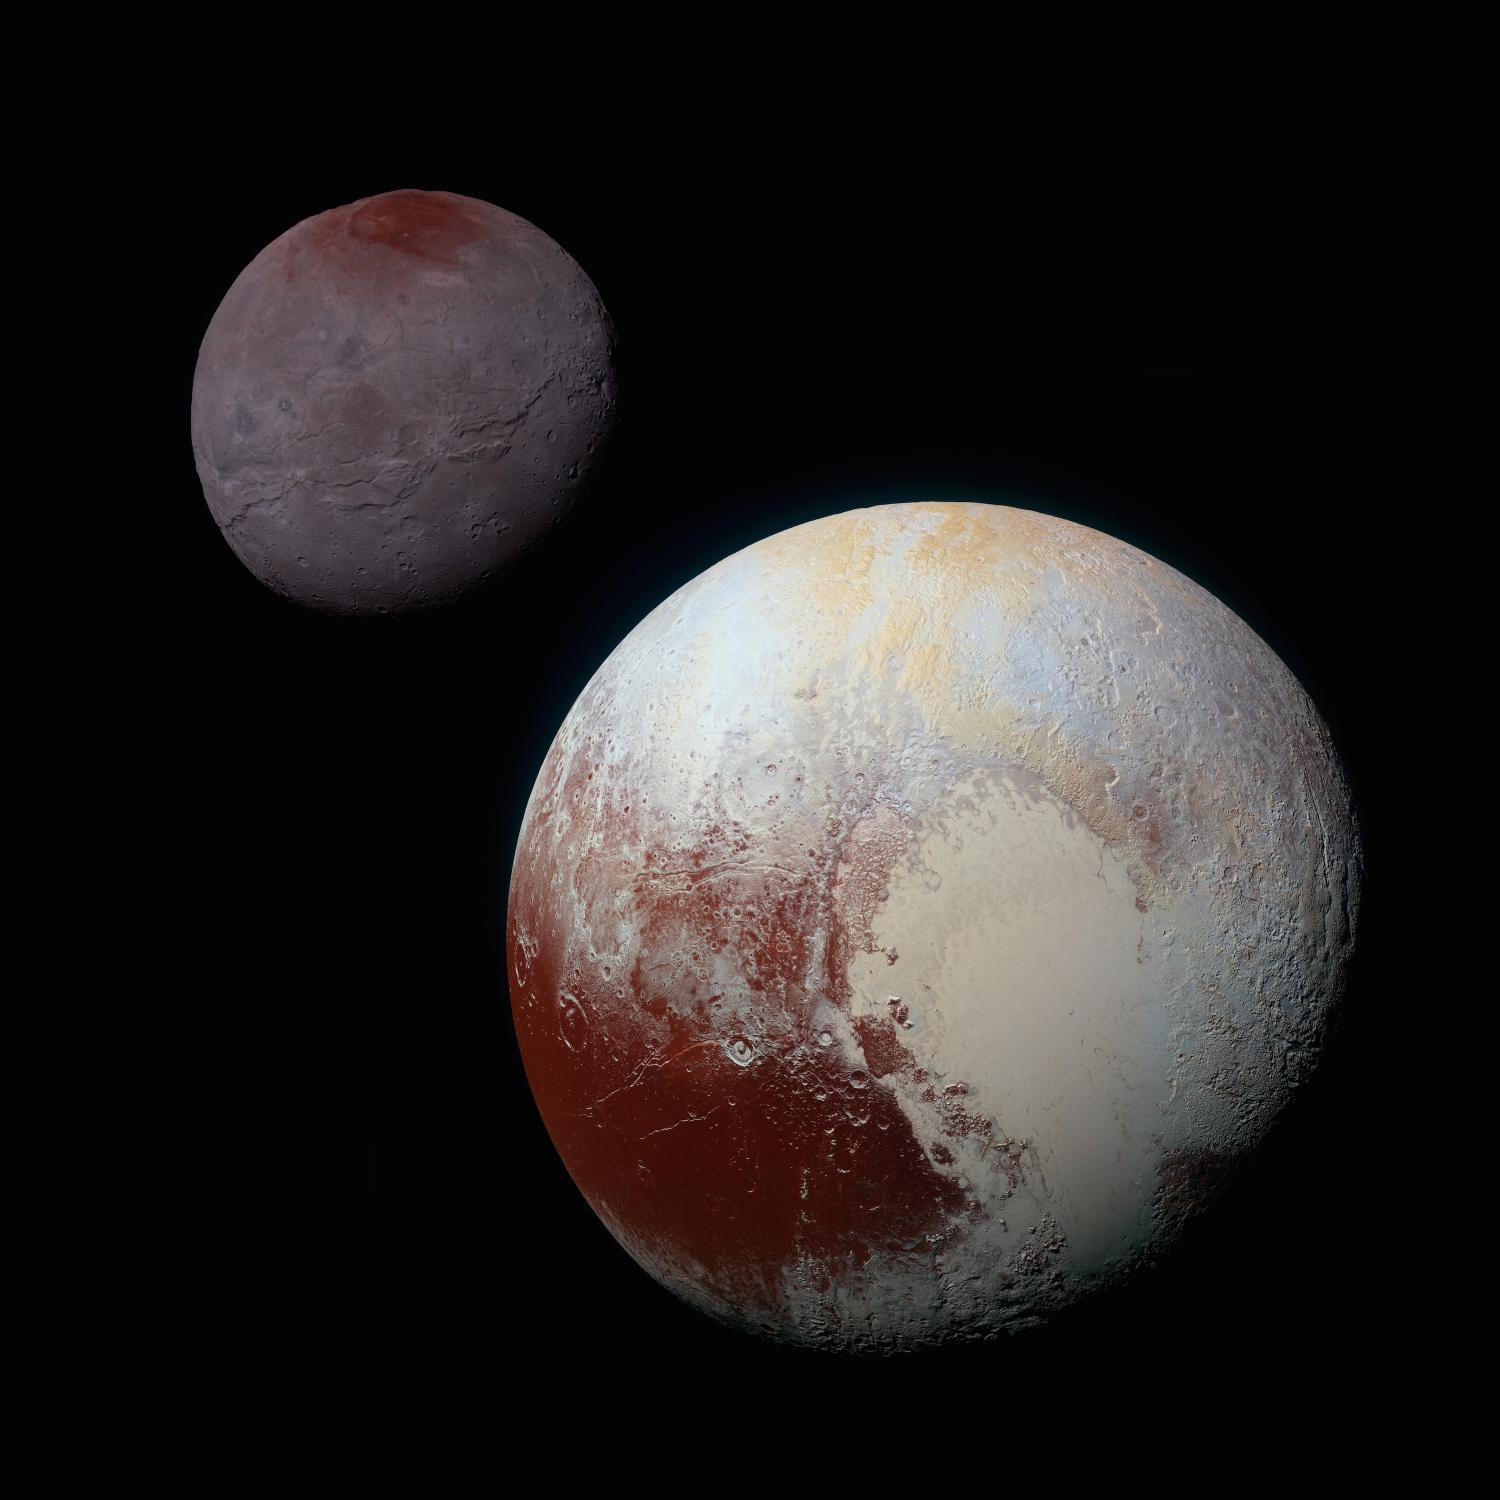 Charon Moon: Pluto's Big Moon Charon Reveals A Colorful And Violent History